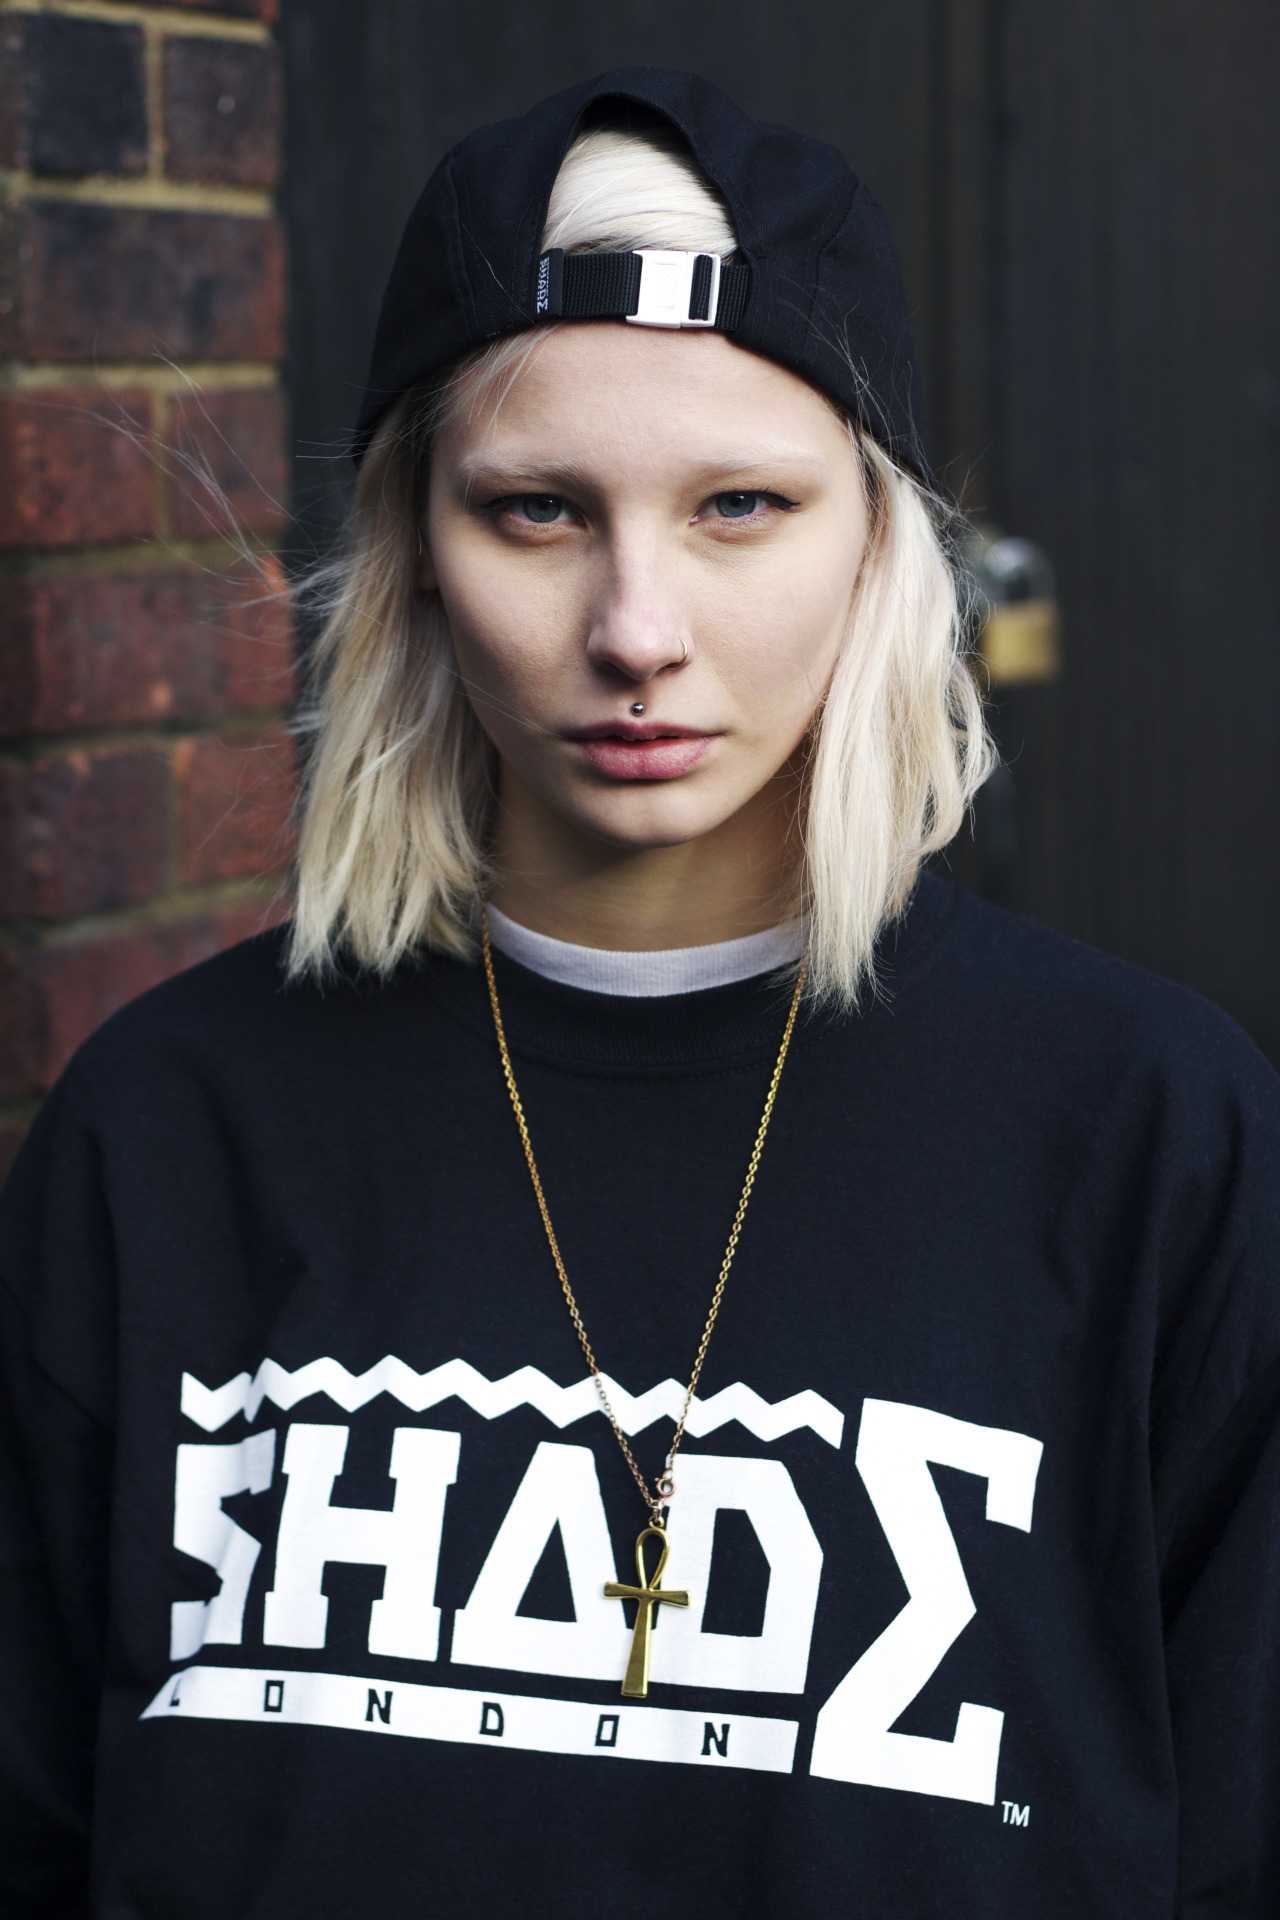 justablackguywithacamera:  Clothing by - www.shadelondon.com / www.shadelondon.tumblr.com Styling by - www.rachaelrodgers.tumblr.com Model - www.rinsedbytony.tumblr.com